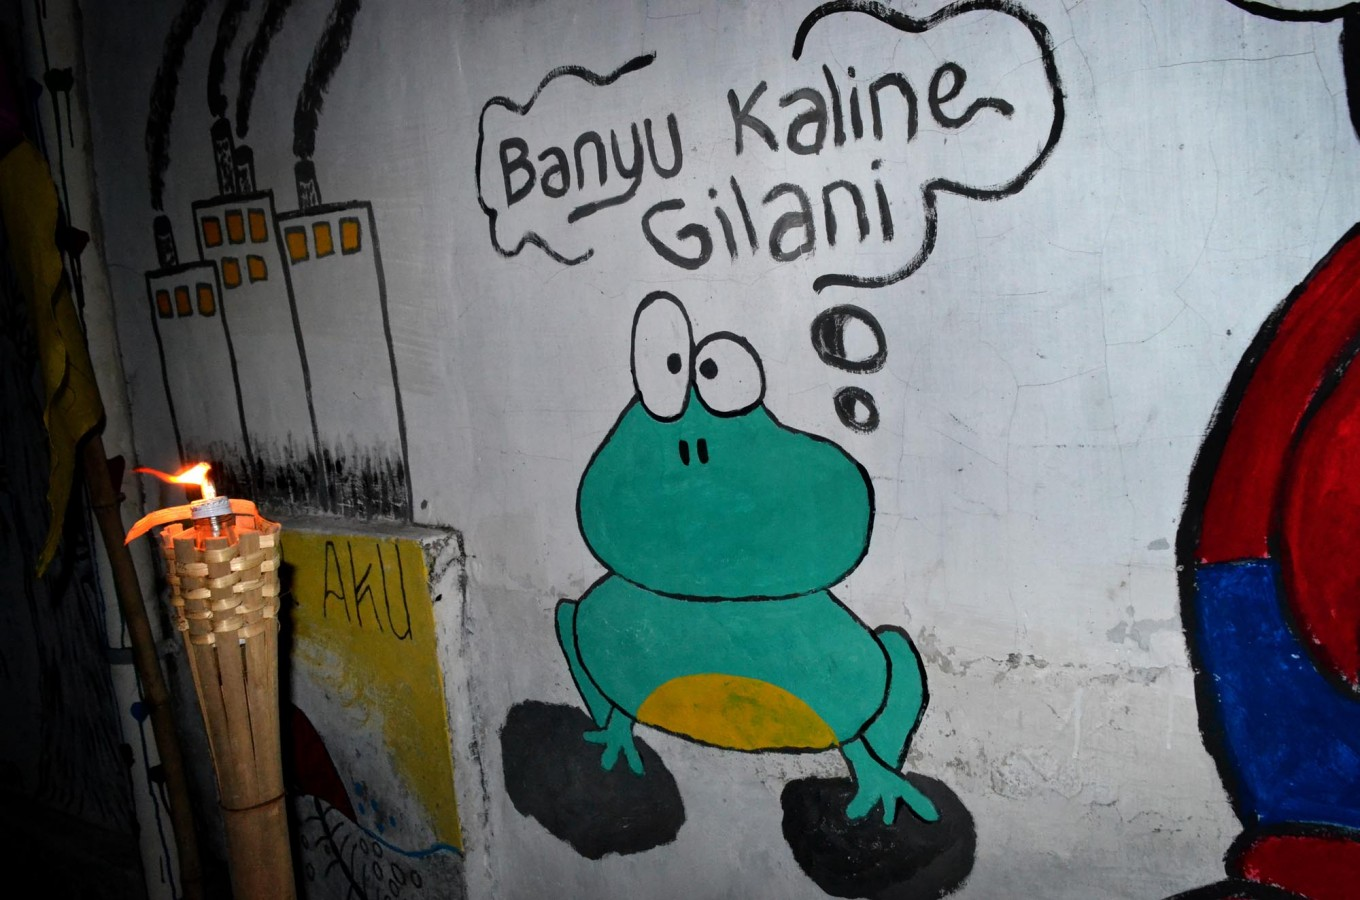 During the festival's pre-event activities, the walls of Baron Cilik kampong were painted with environmental murals, including the illustration of a frog protesting the polluted condition of the river. JP/Stefanus Ajie